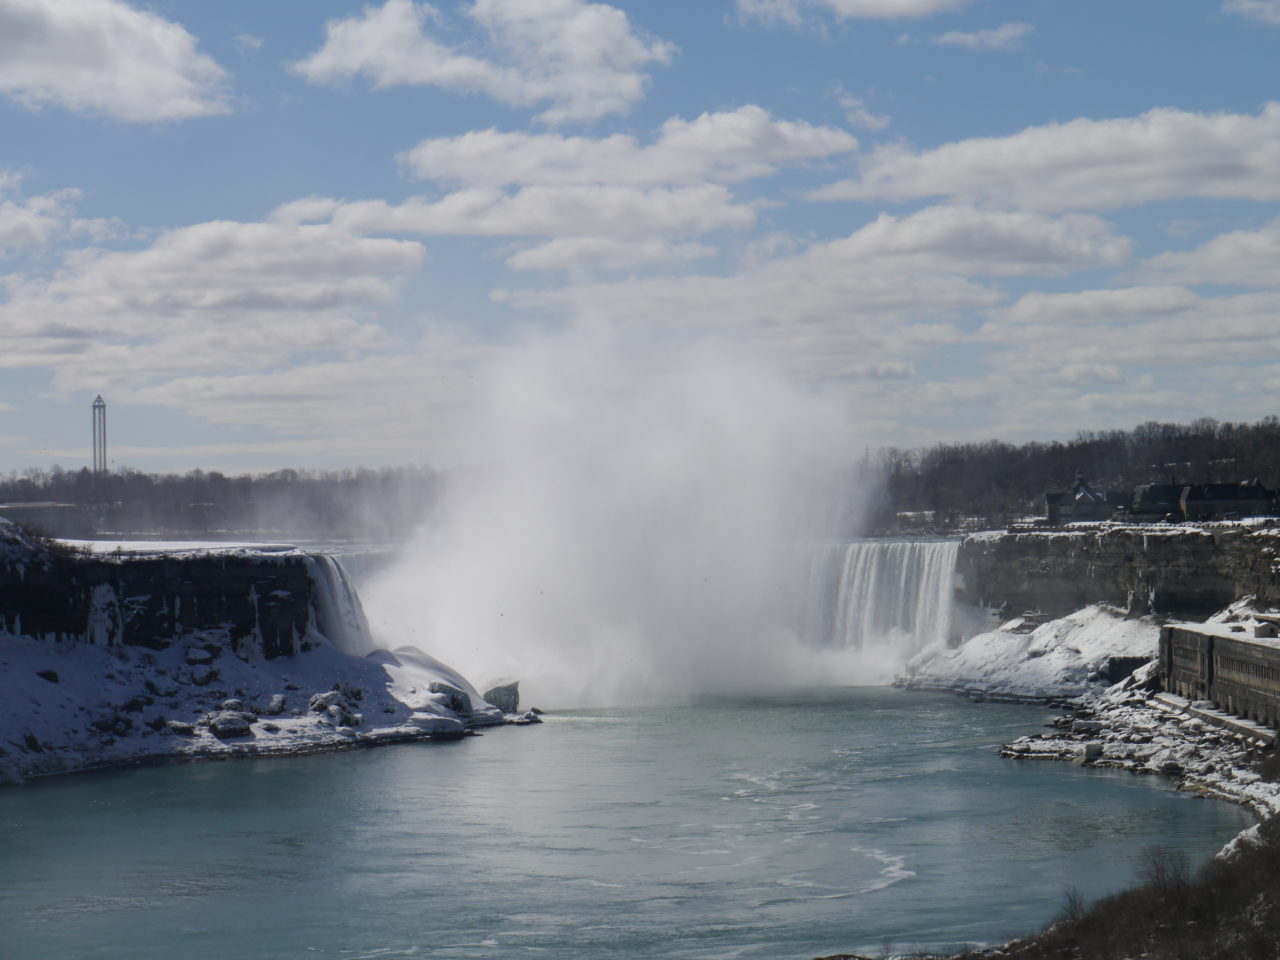 One of the Most Entertaining Webcams in the World is here in Niagara Falls!